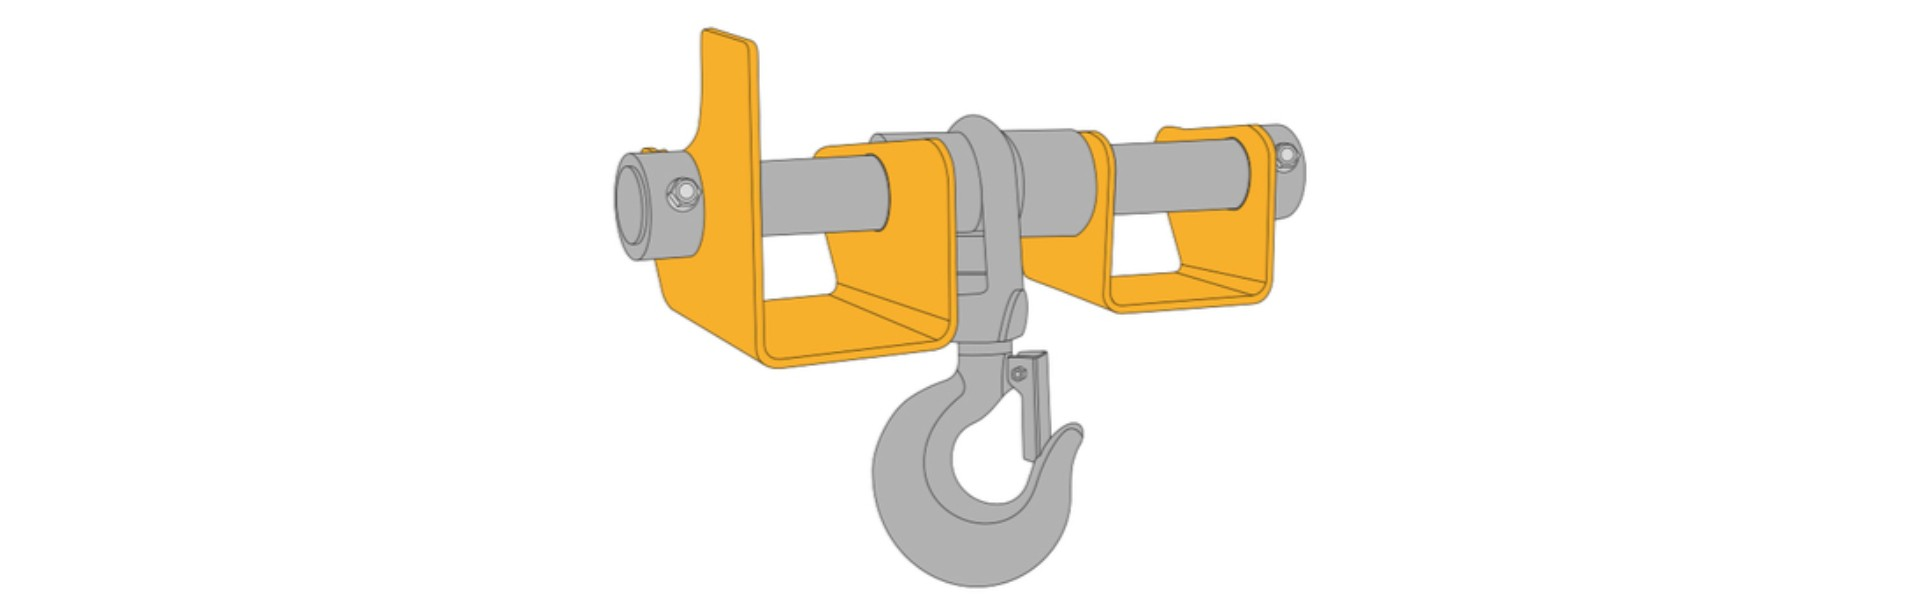 JCB Crane Hook Lifting Equipment Malaysia